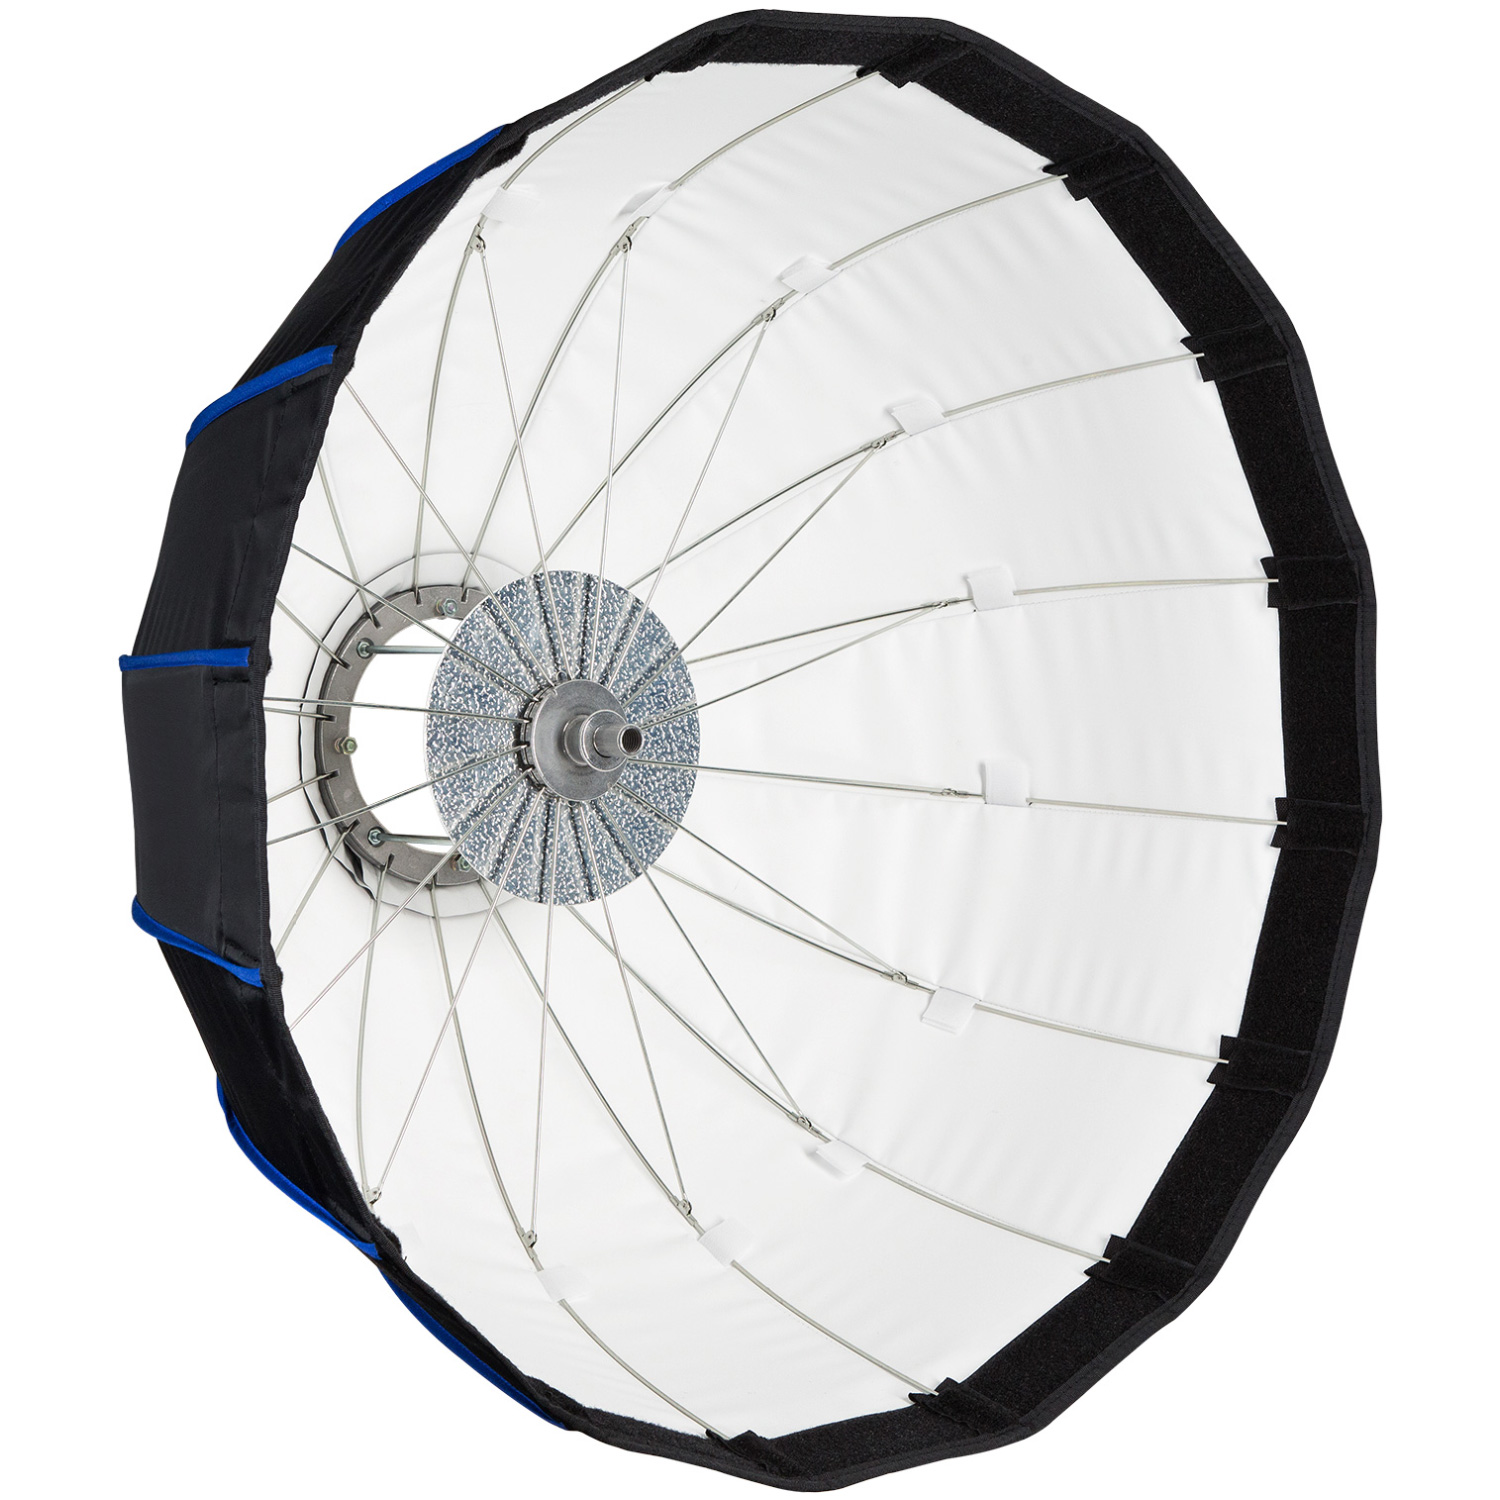 Collapsible Beauty Dish (24-in., Elinchrom Mount)